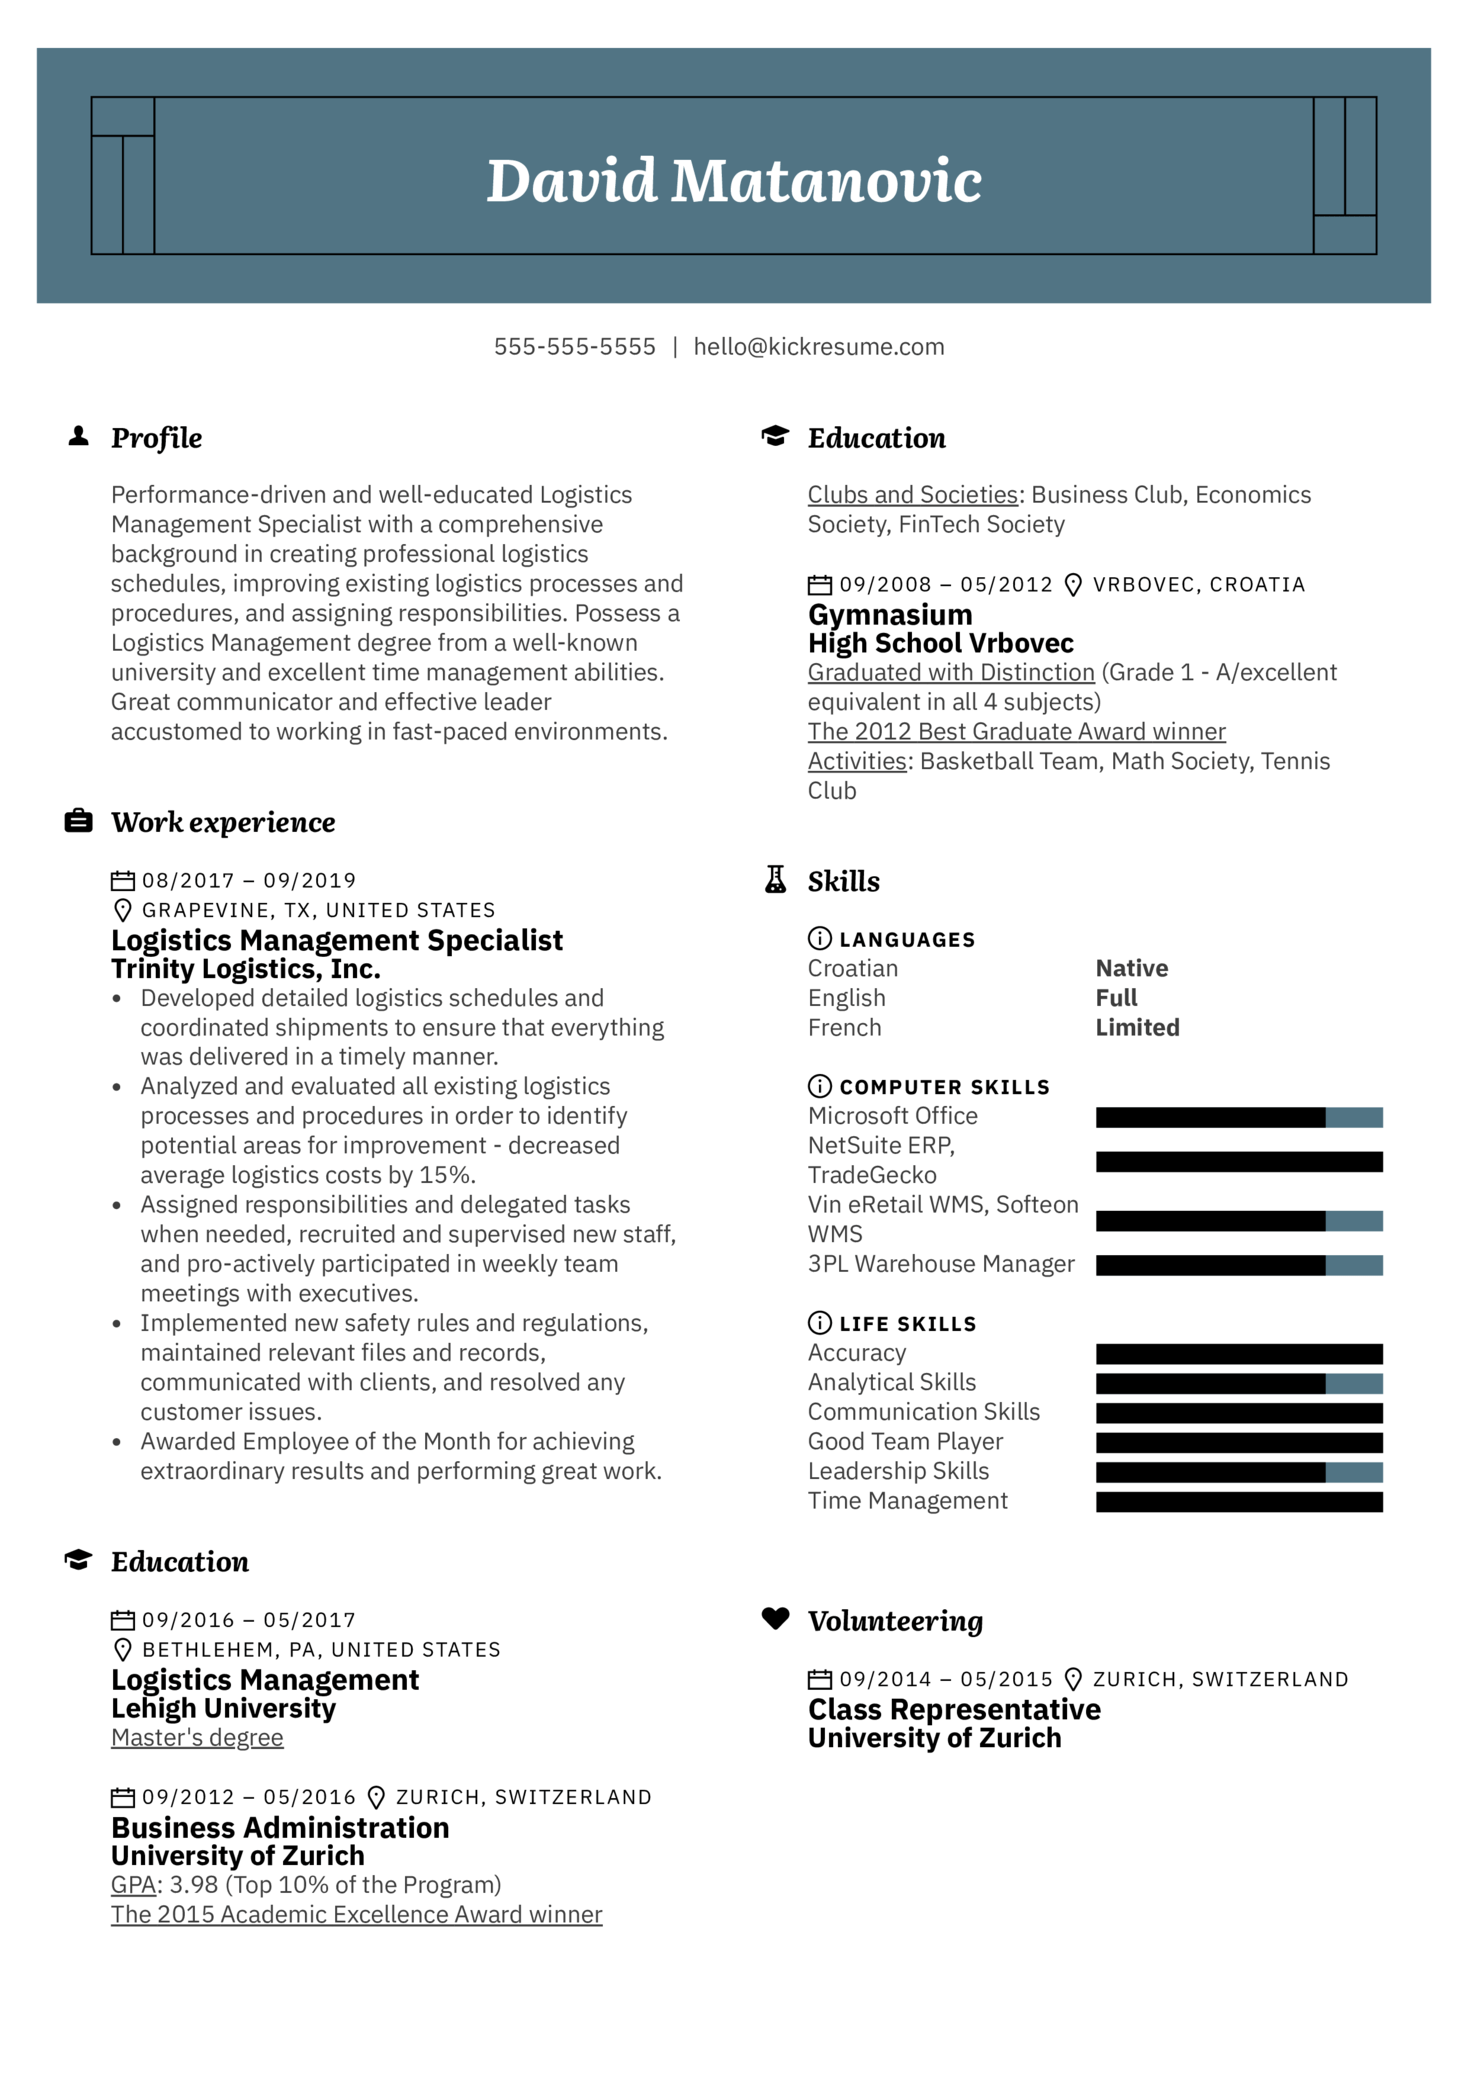 Logistics Management Specialist Resume Example (Part 1)